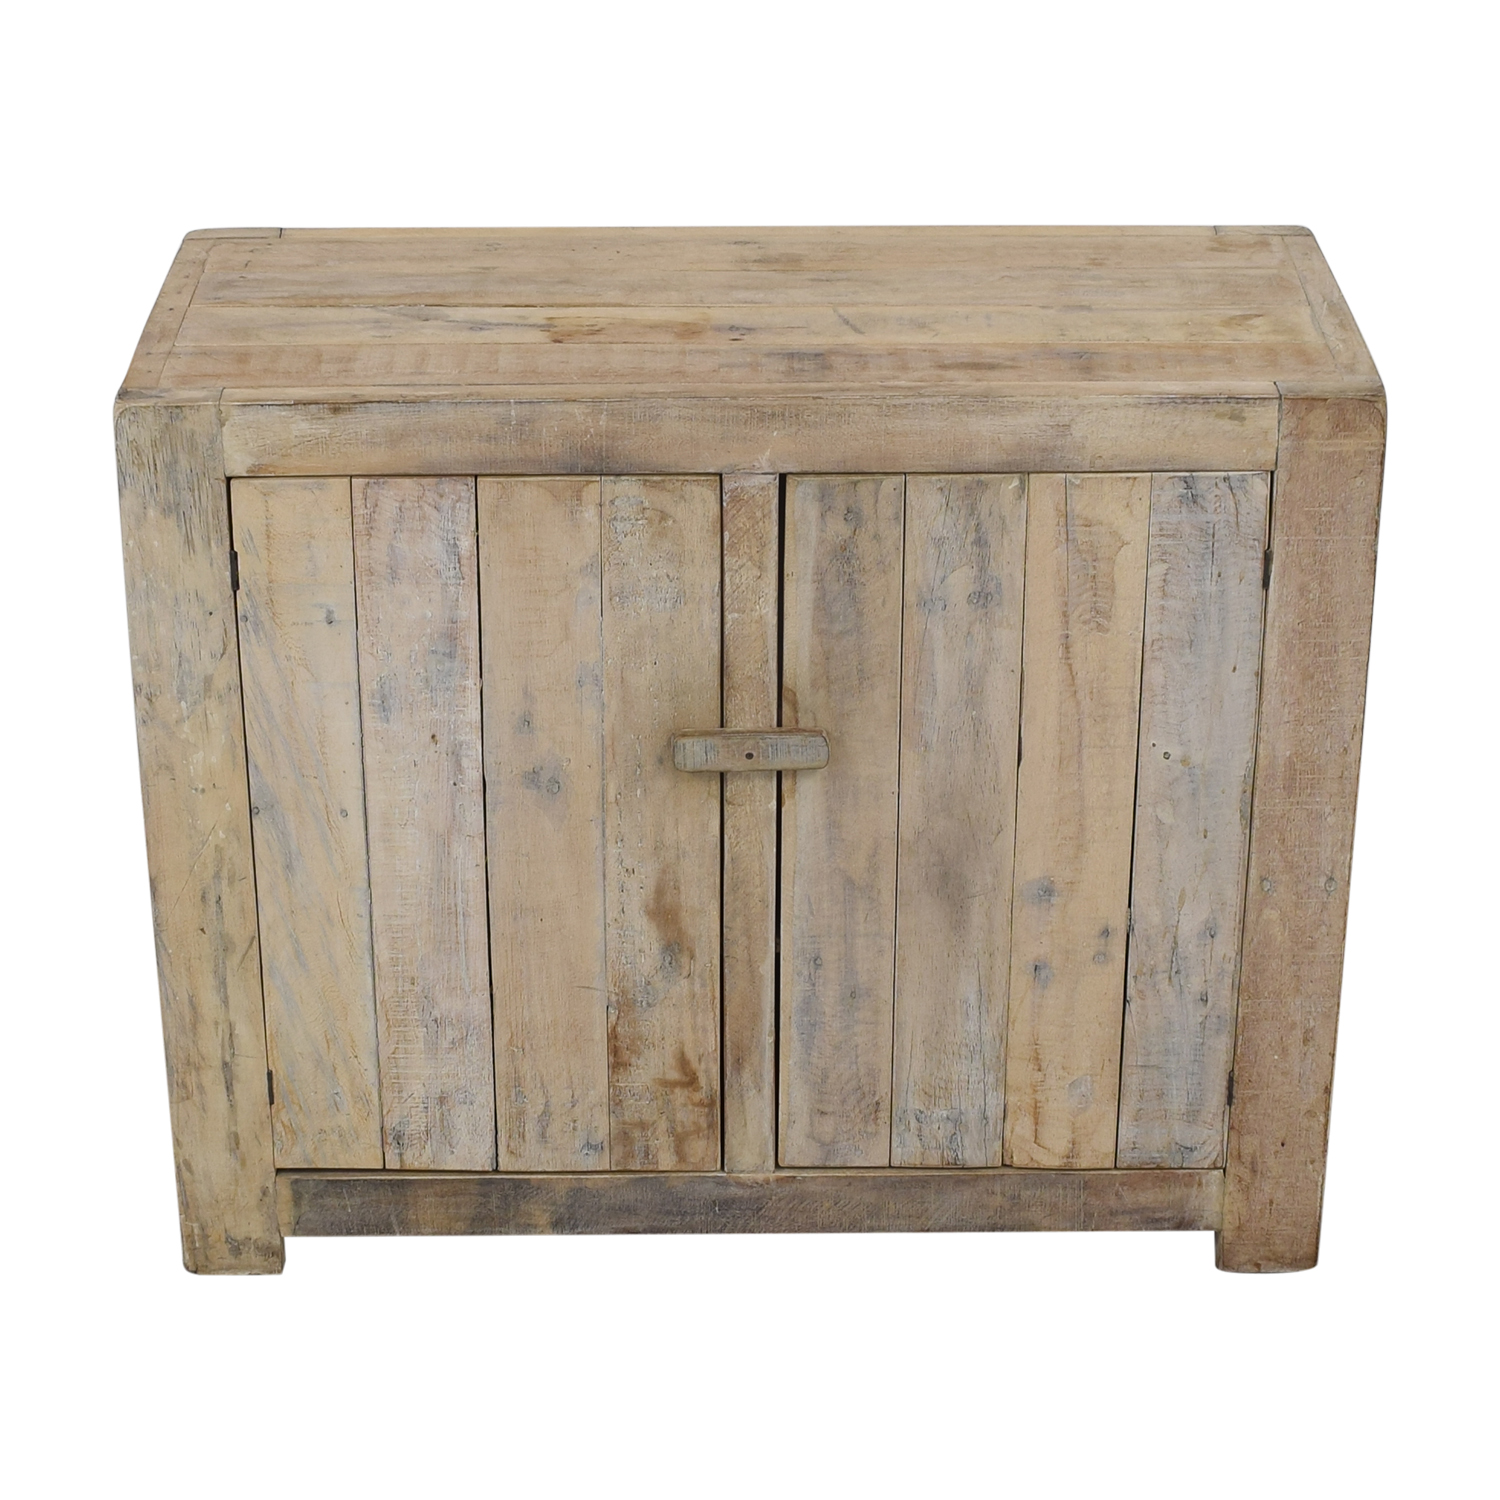 Custom Handmade French Country Cabinet dimensions